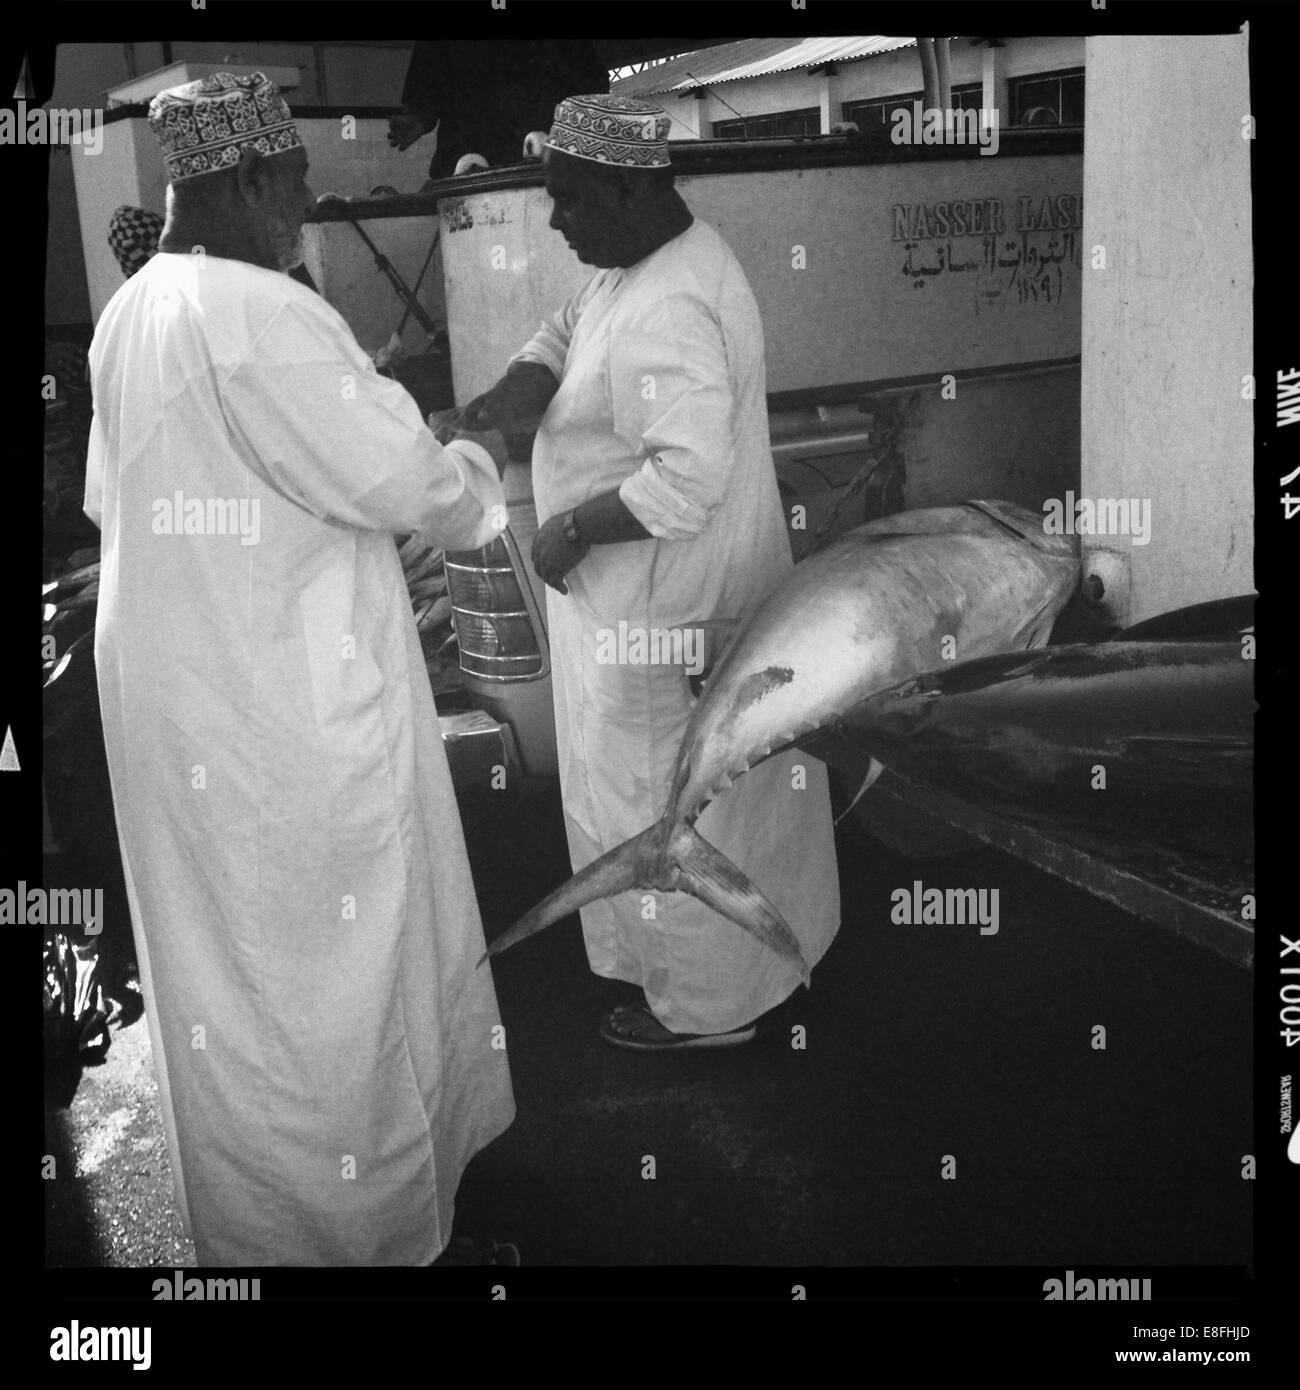 Oman, Muscat, Yellowfin tuna sale at market - Stock Image